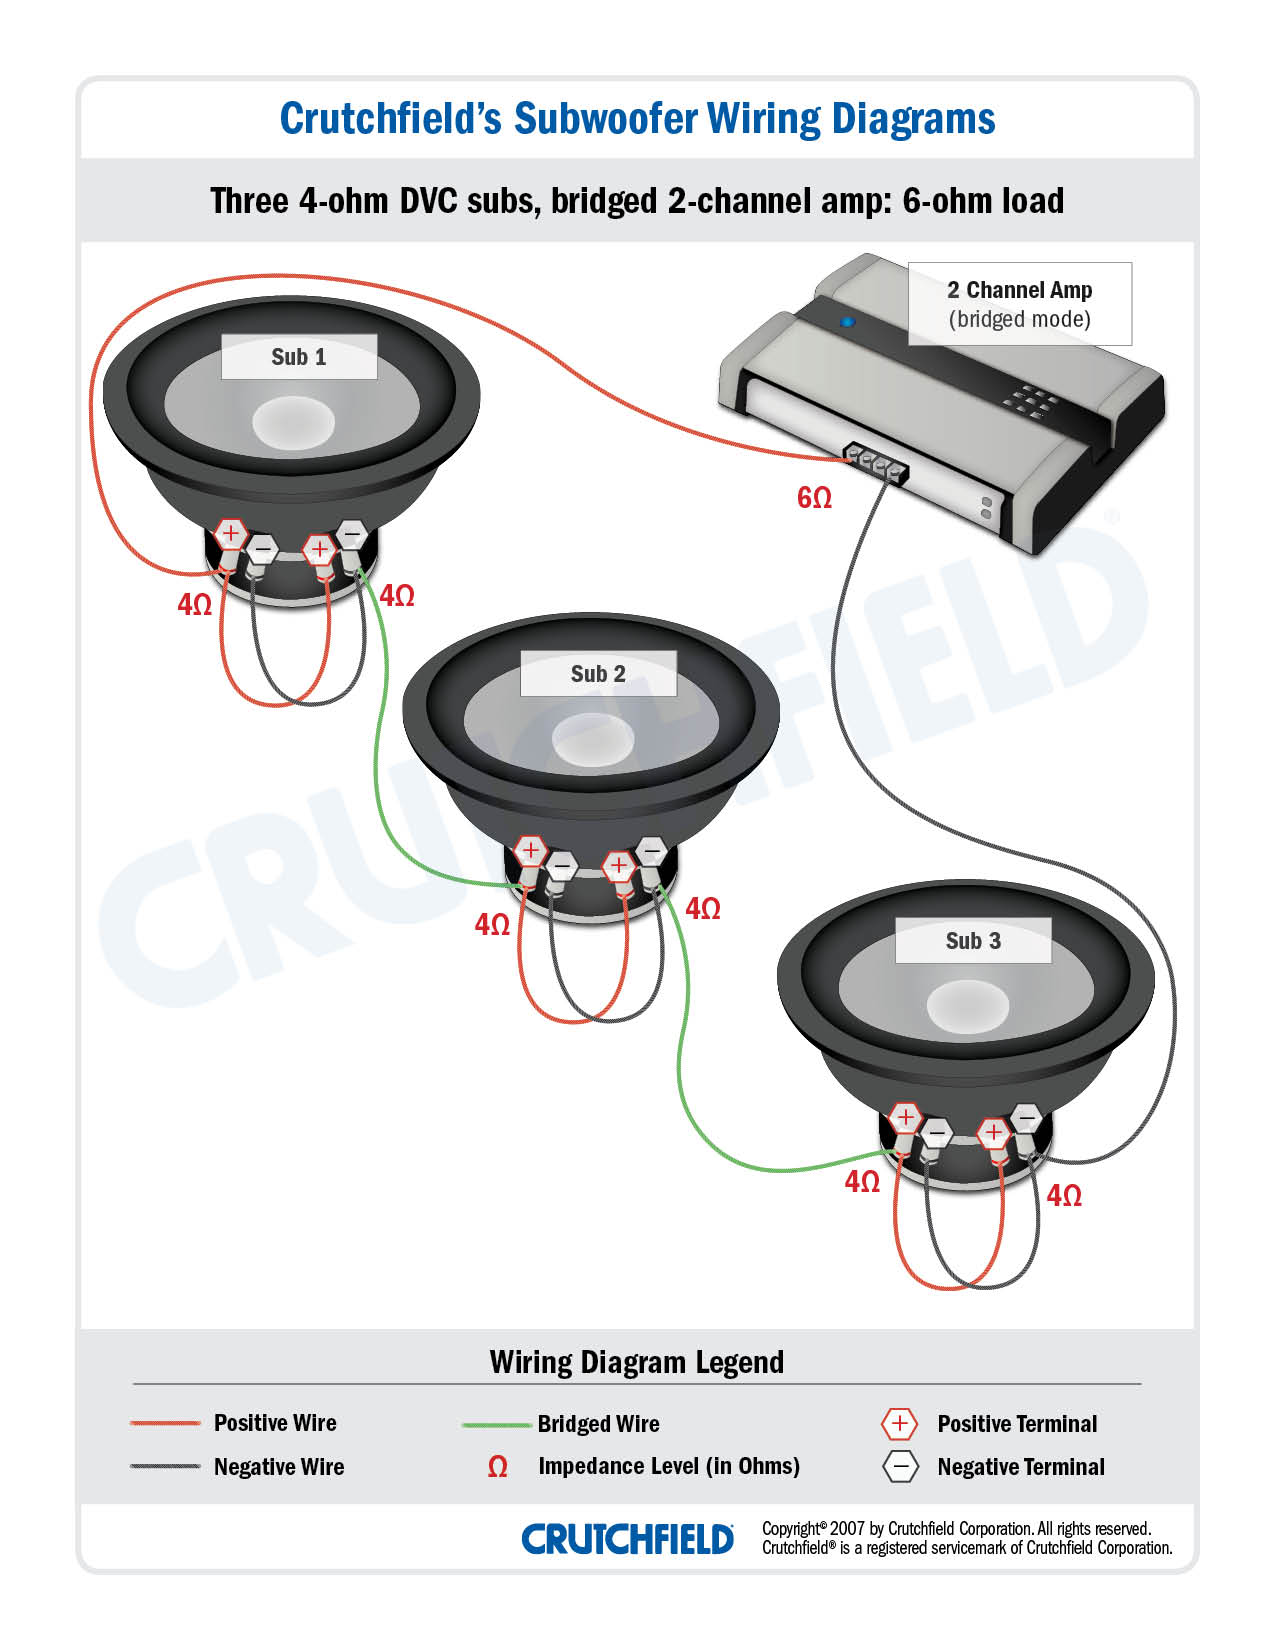 3 DVC 4 ohm 2 ch subwoofer wiring diagrams subwoofer wiring diagrams at edmiracle.co